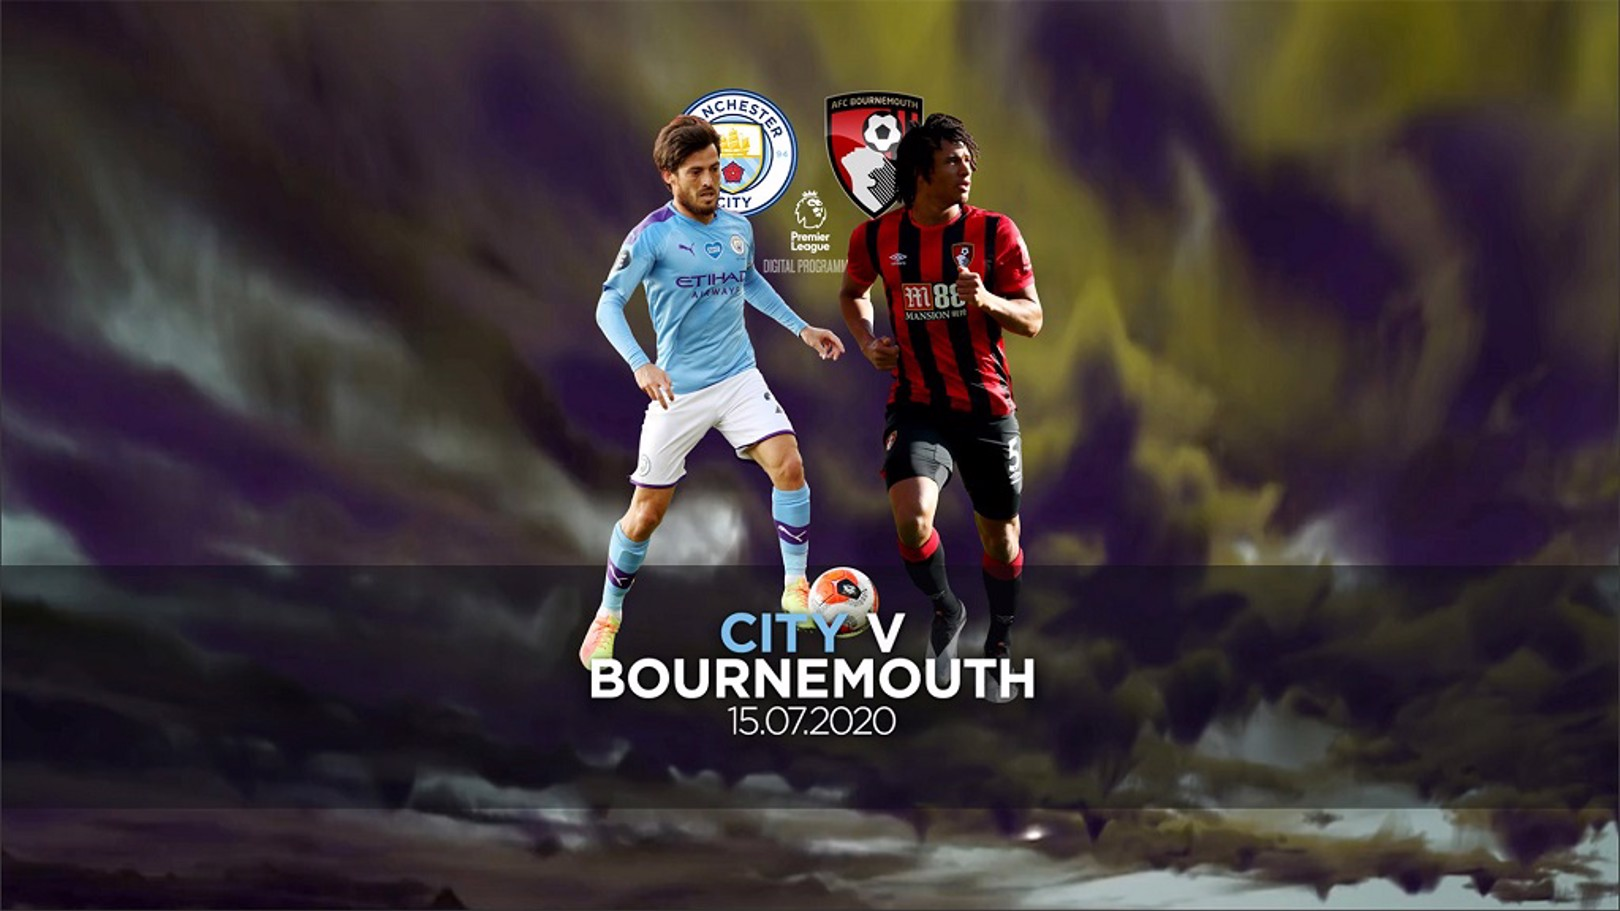 City v Bournemouth FREE digital programme now available!